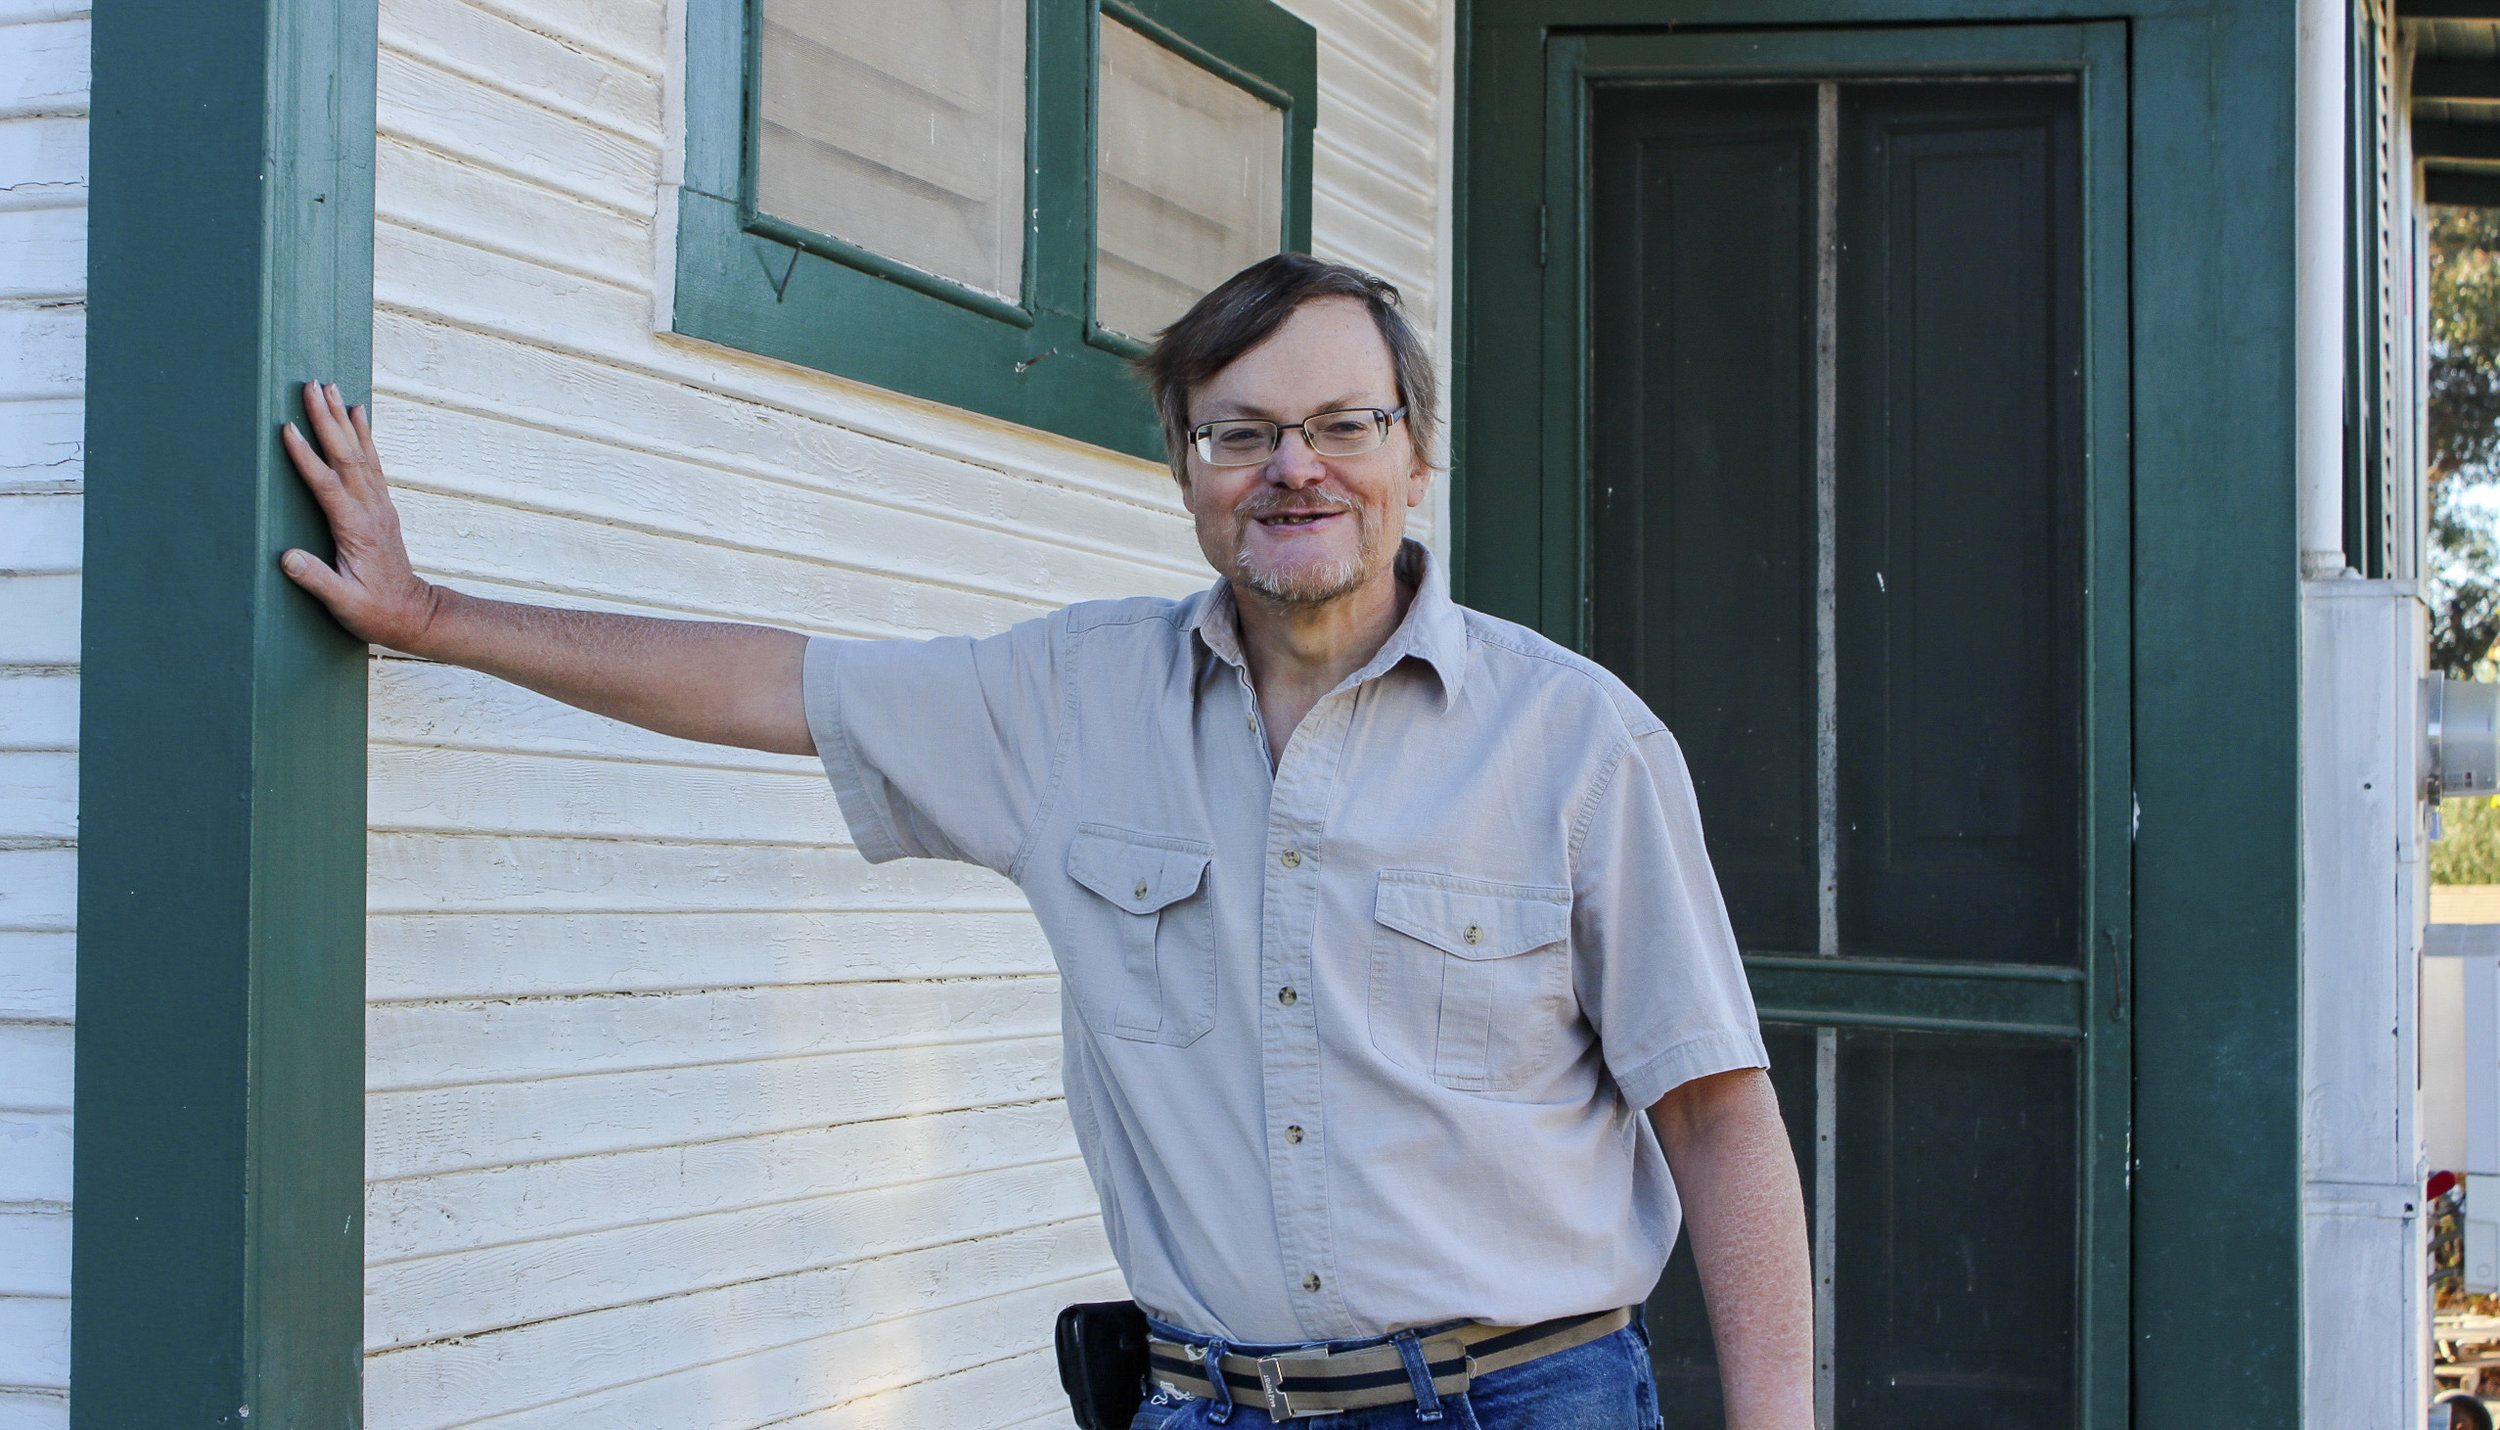 Former Interfaith shelter participant Brian poses in front of his new home.